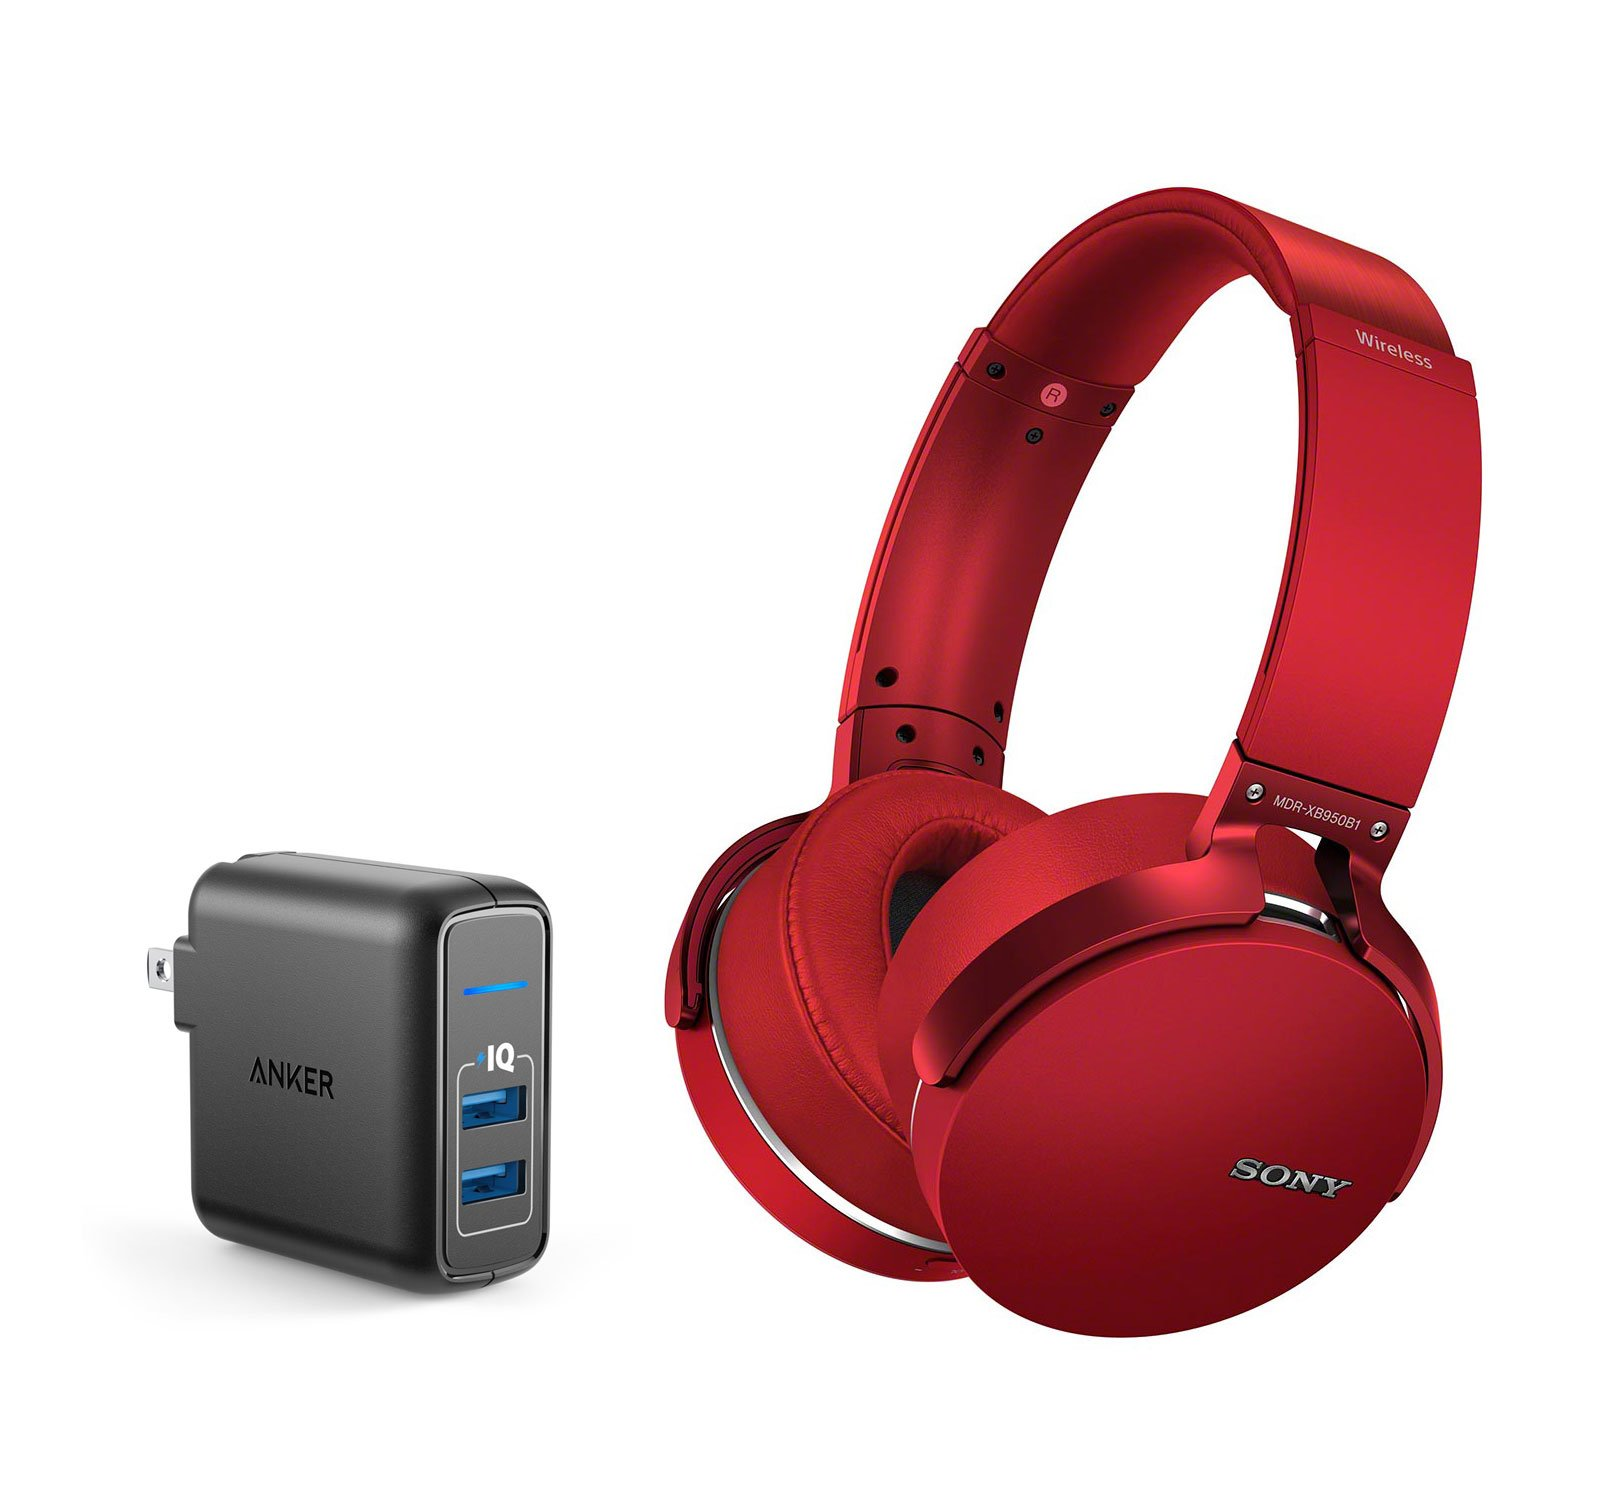 Sony MDRXB950B1/R Over-ear Bluetooth Headphone Bundle with Dual Port 24W USB Travel Wall Charger - Red